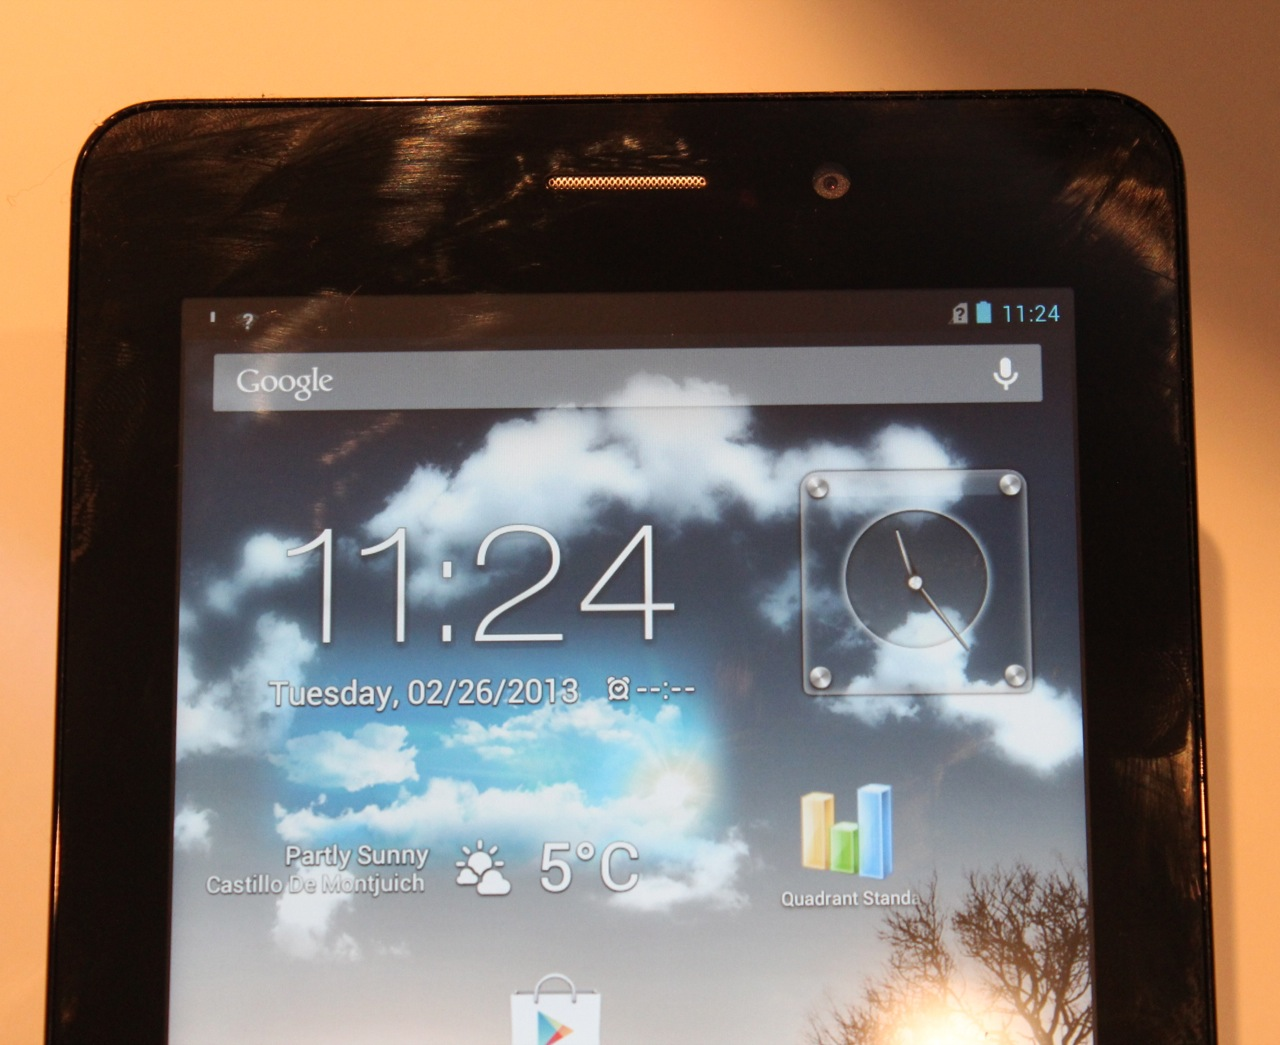 The tablet has a small speaker grille above the screen for use while making calls.